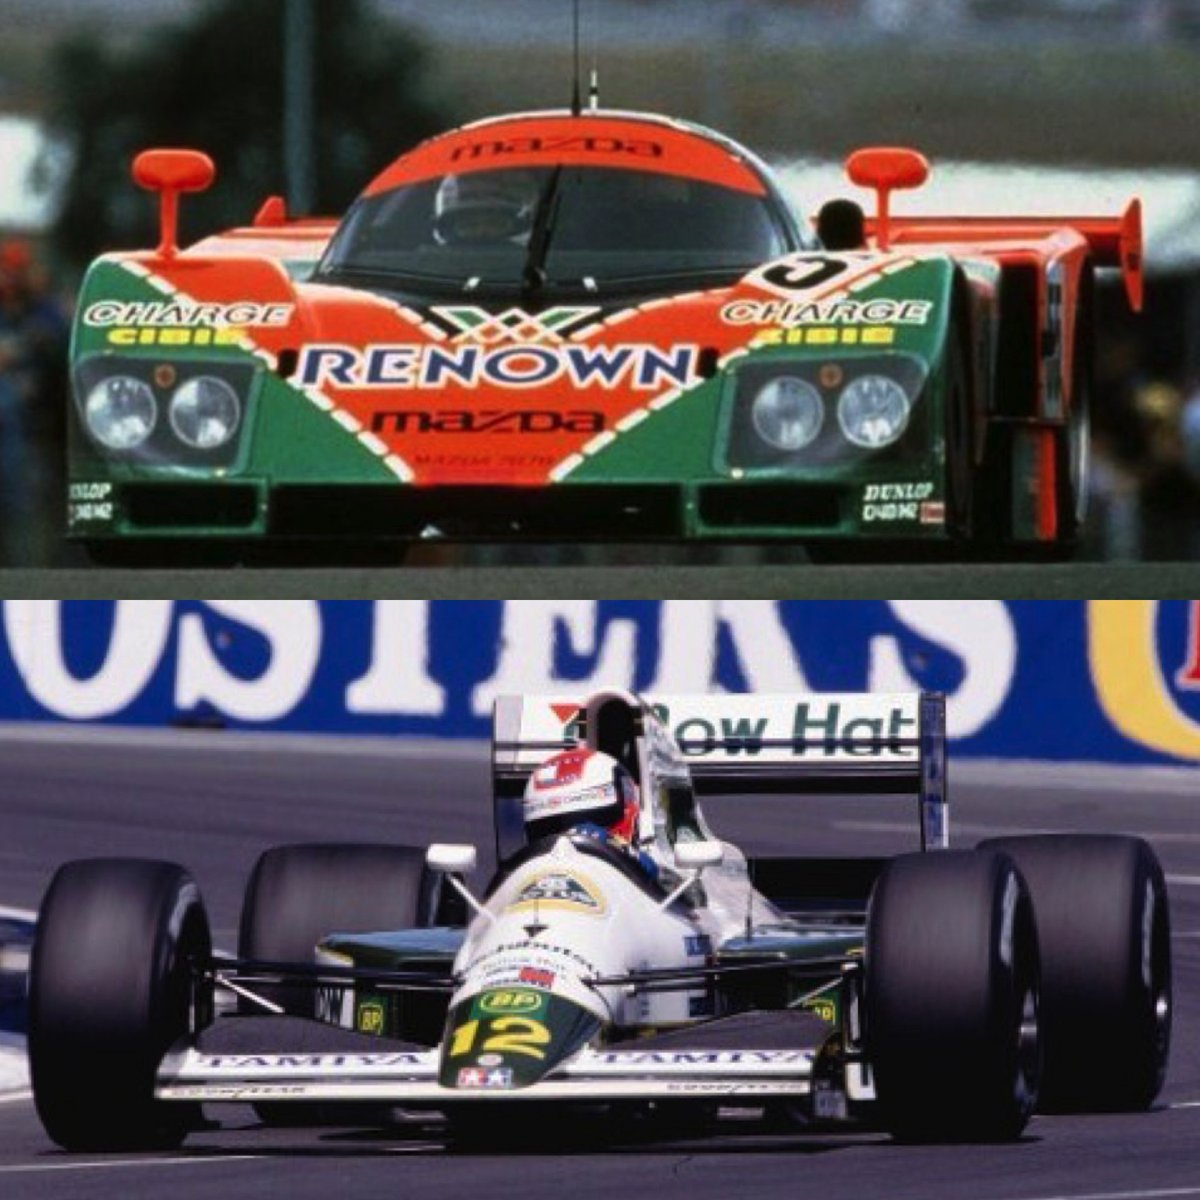 Johnny Herbert was the only driver to win the 24 Hours of Le Mans and race in the Adelaide Grand Prix in the same year, driving the Mazda 787B in the former and for Team Lotus in the latter in 1991. #F1 #Adelaide #LeMans24 https://t.co/CZCxVX7PzL